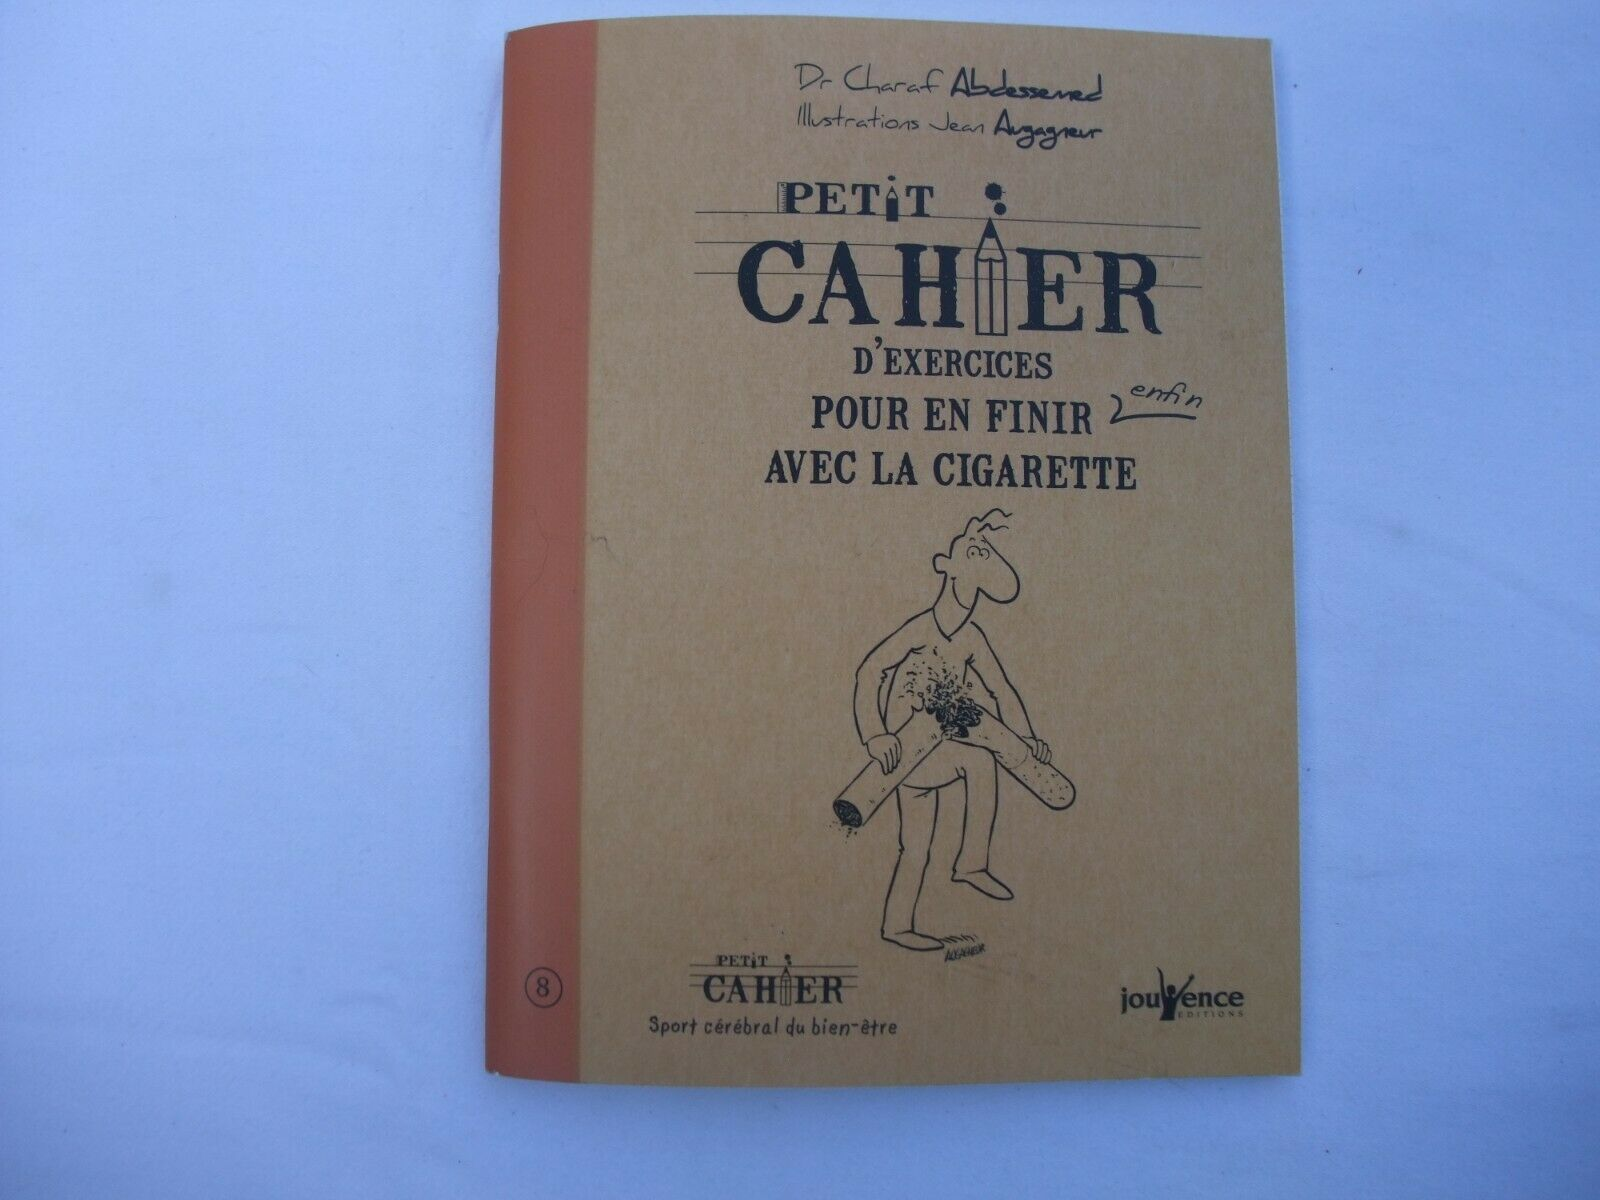 Primary image for Petit cahier d'exercices pour en finir enfin avec la cigarette IN FRENCH